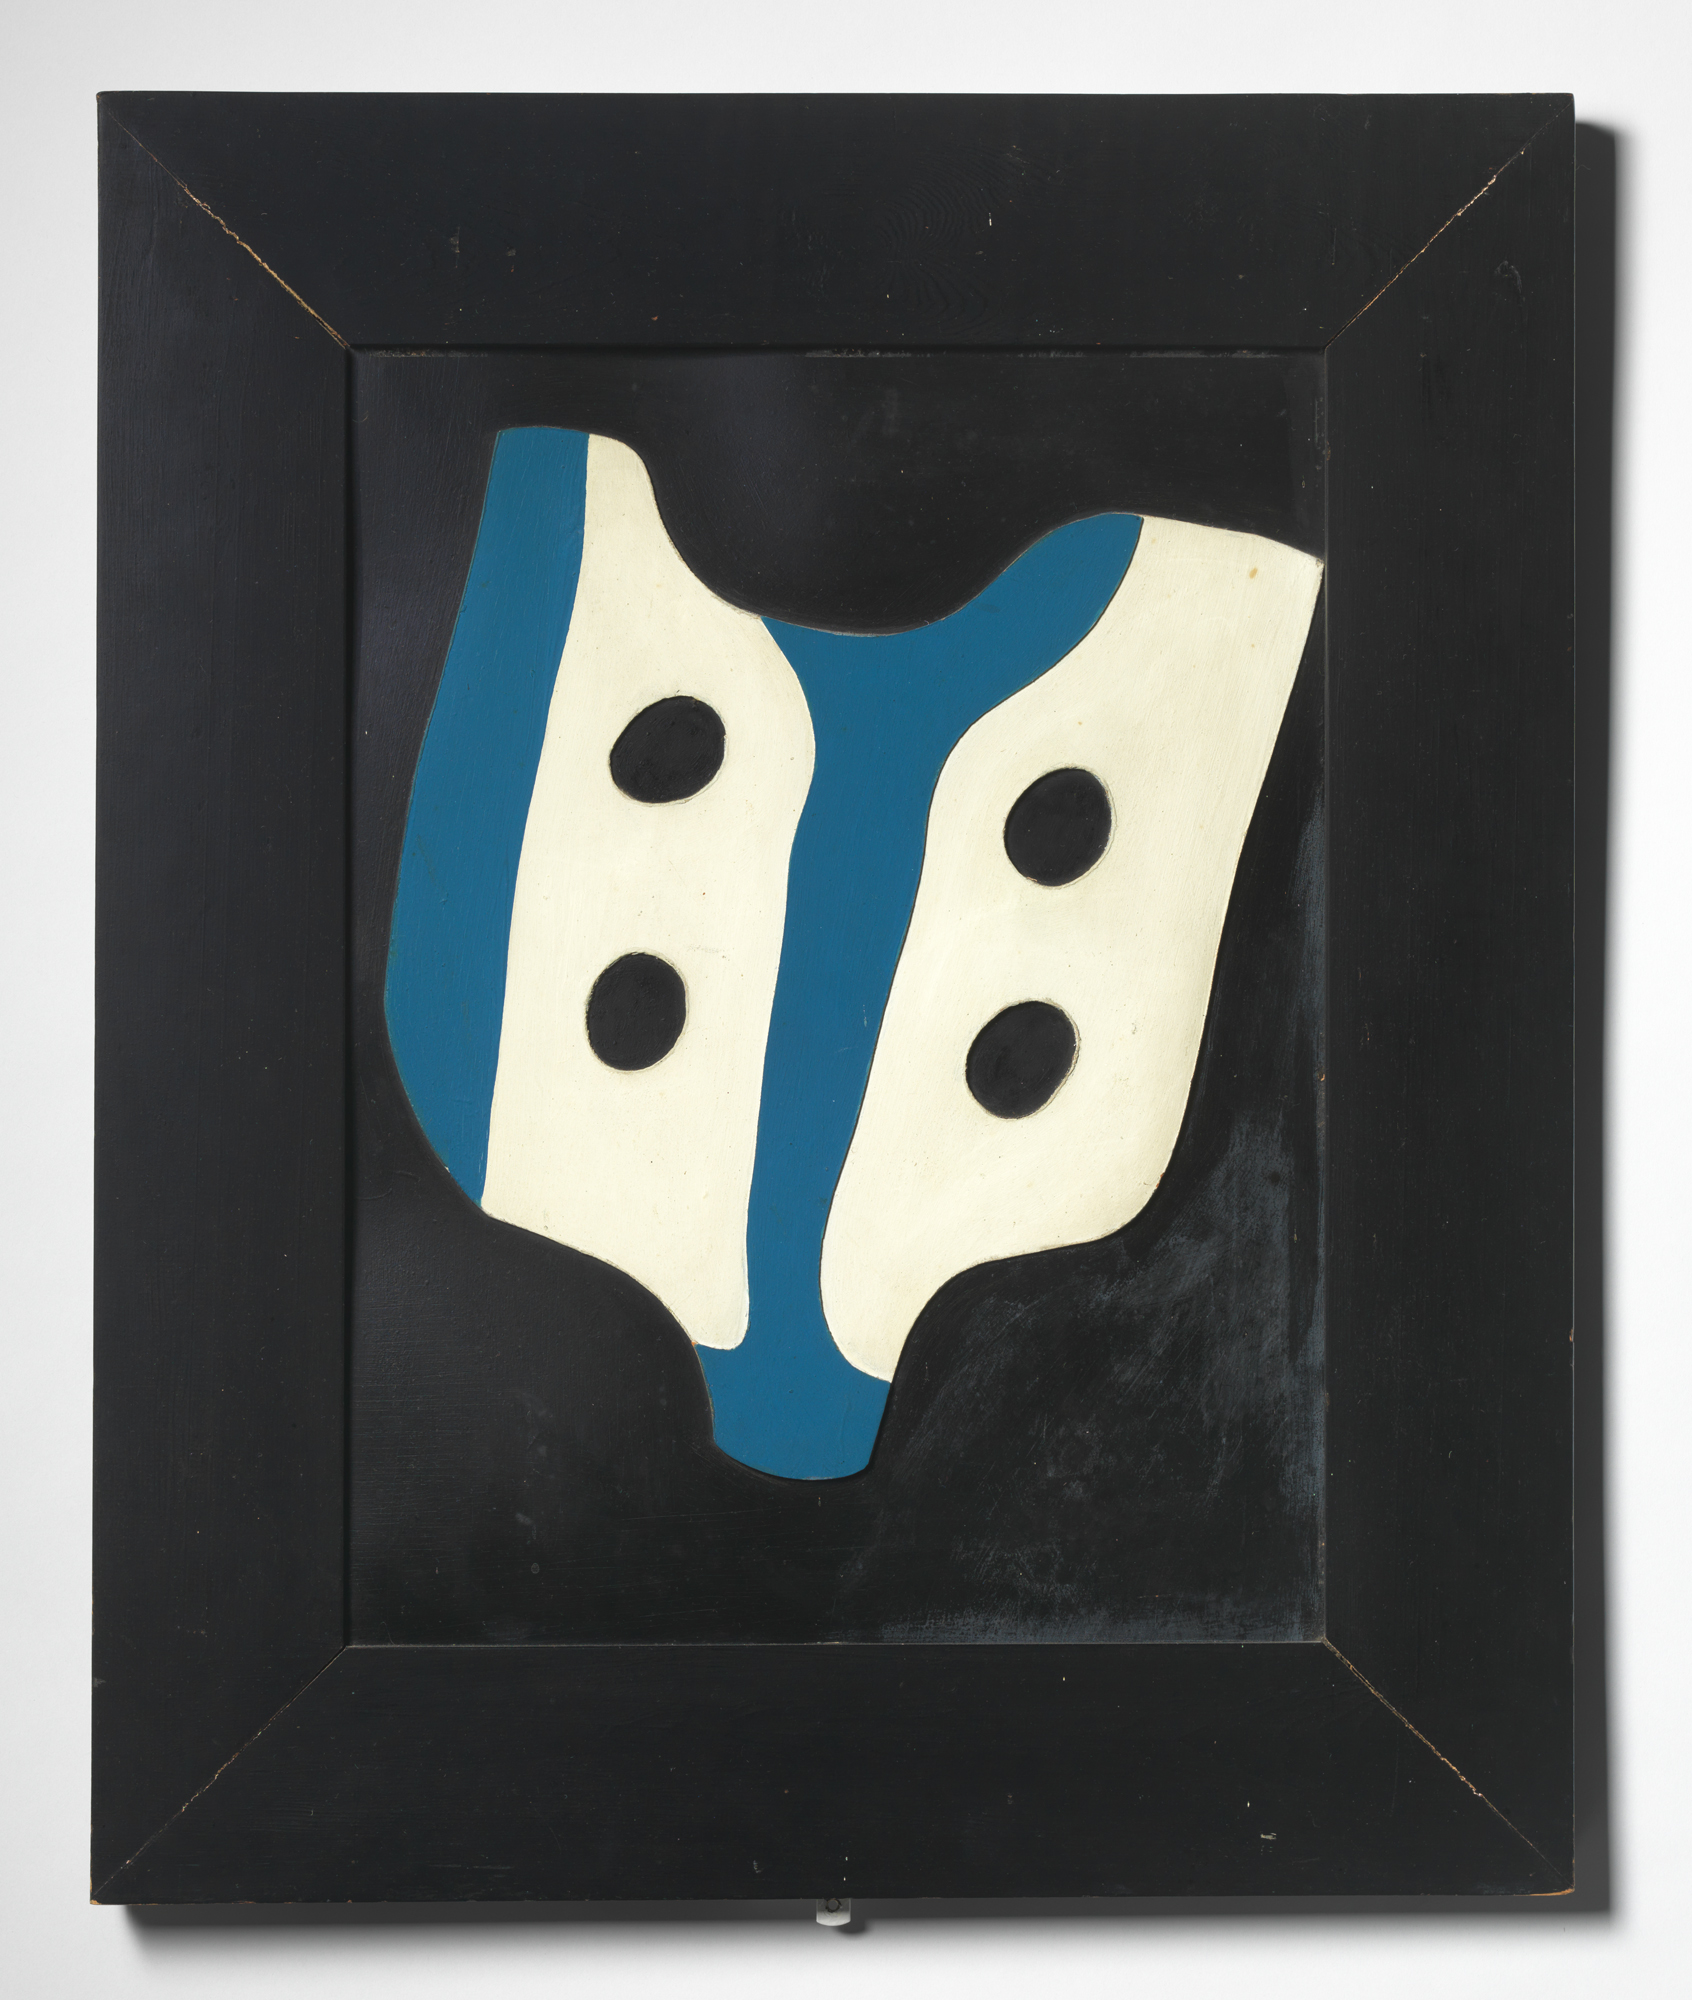 Hans (Jean) Arp, French, born Alsace, 1886–1966: Plastron et cravate (Shirtfront and Necktie), 1927 (2012-1). © 2012, Artists Rights Society (ARS) NY / VG Bild-Kunst / photo: Bruce M. White